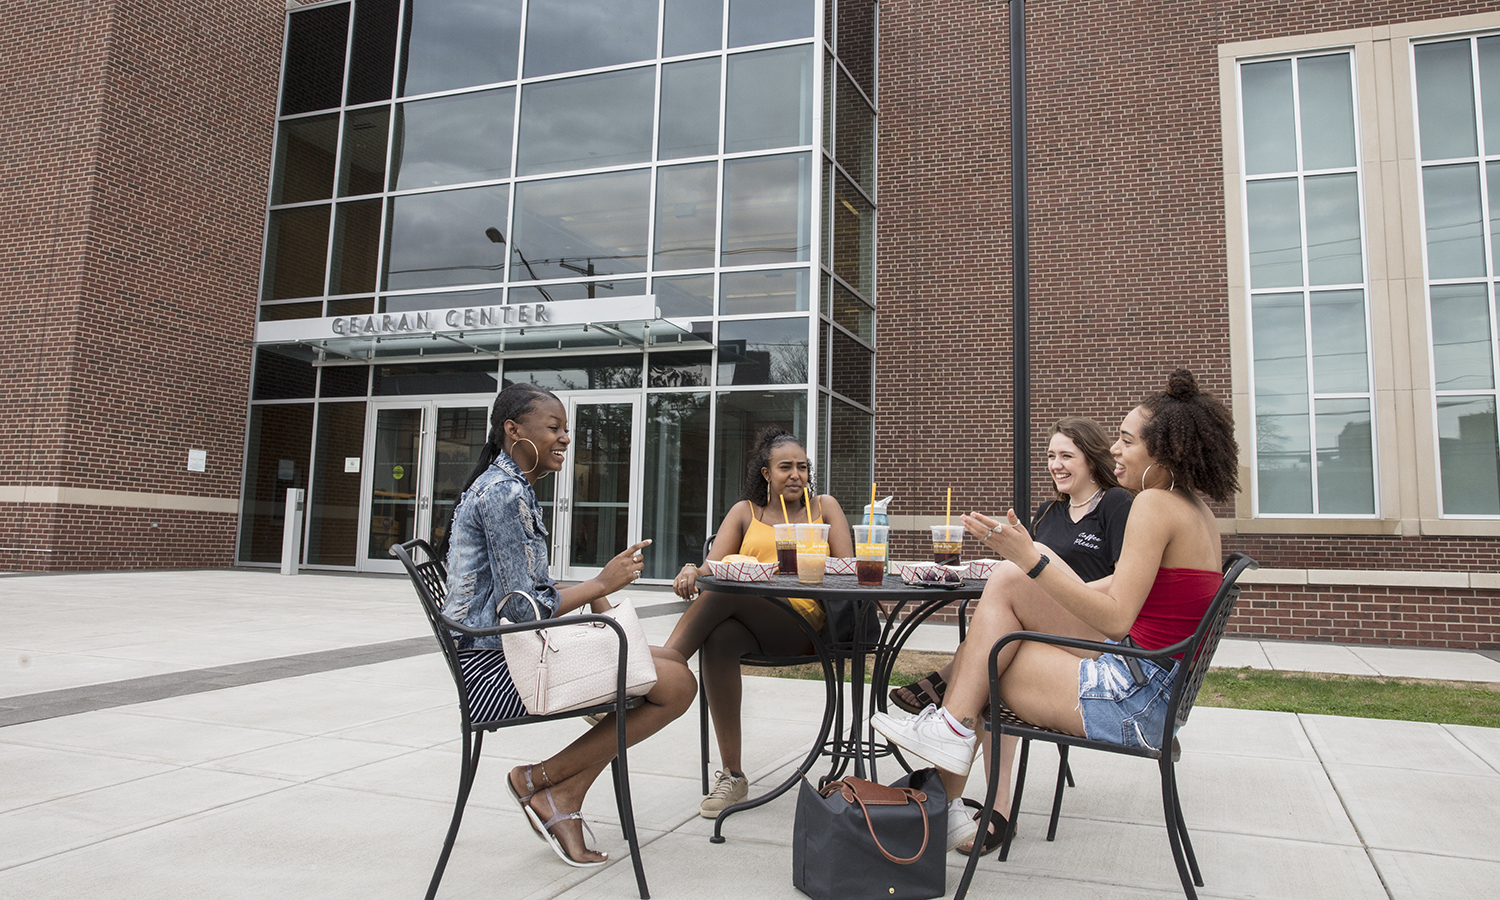 Students relax on the patio of the Gearan Center for the Performing Arts during reading days.